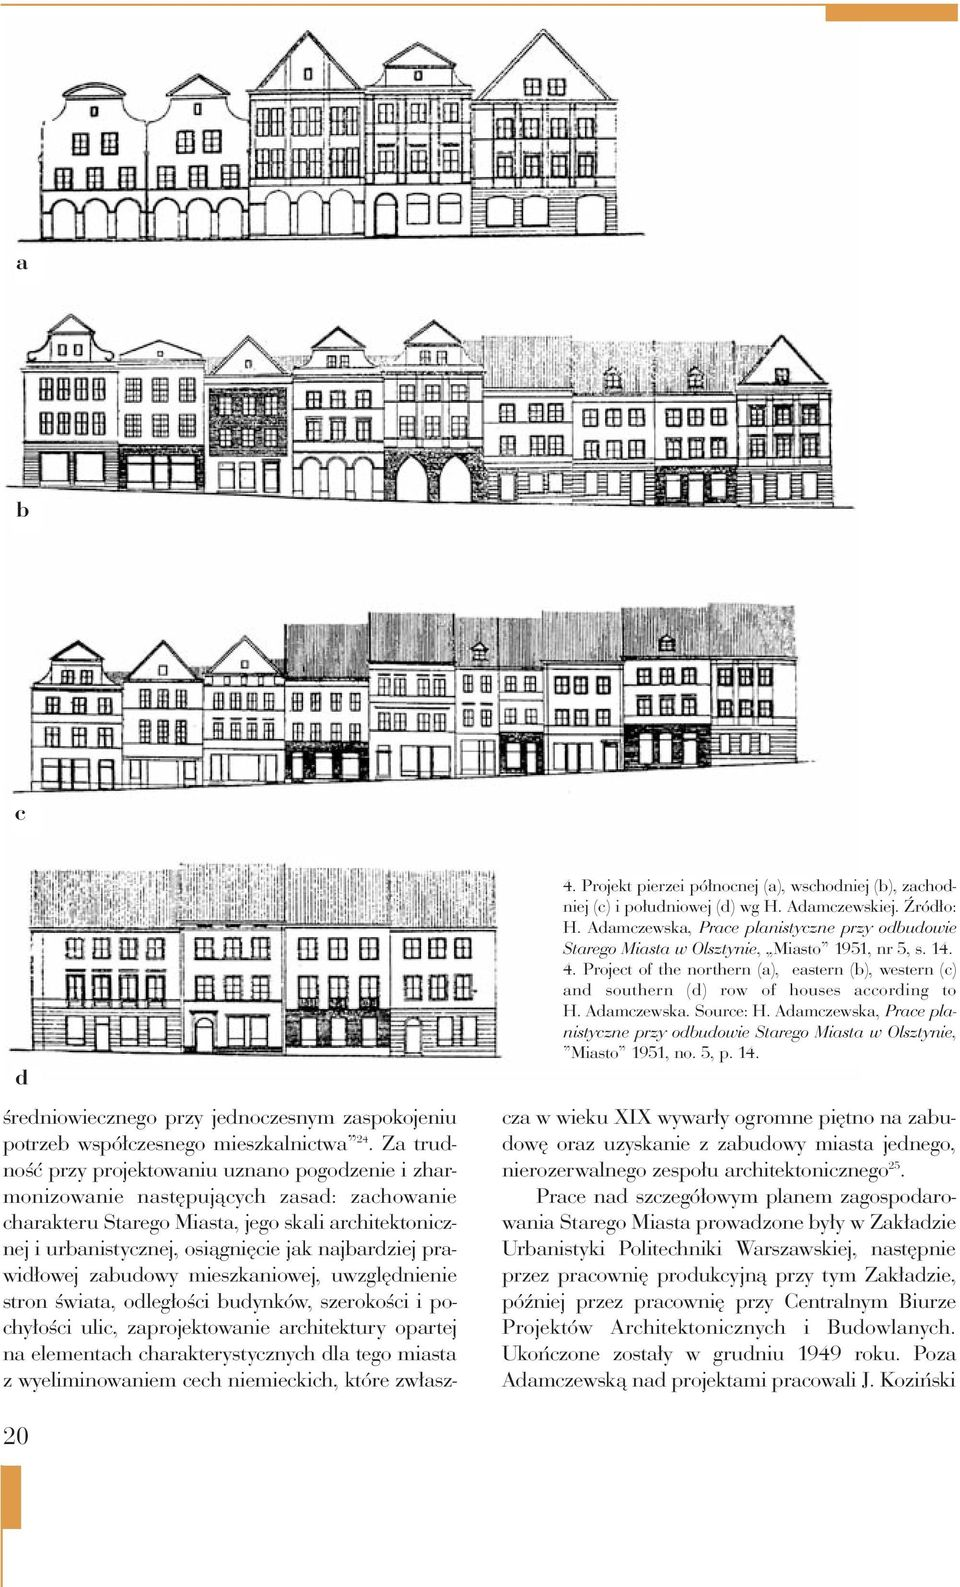 Project of the northern (a), eastern (b), western (c) and southern (d) row of houses according to H. Adamczewska. Source: H.